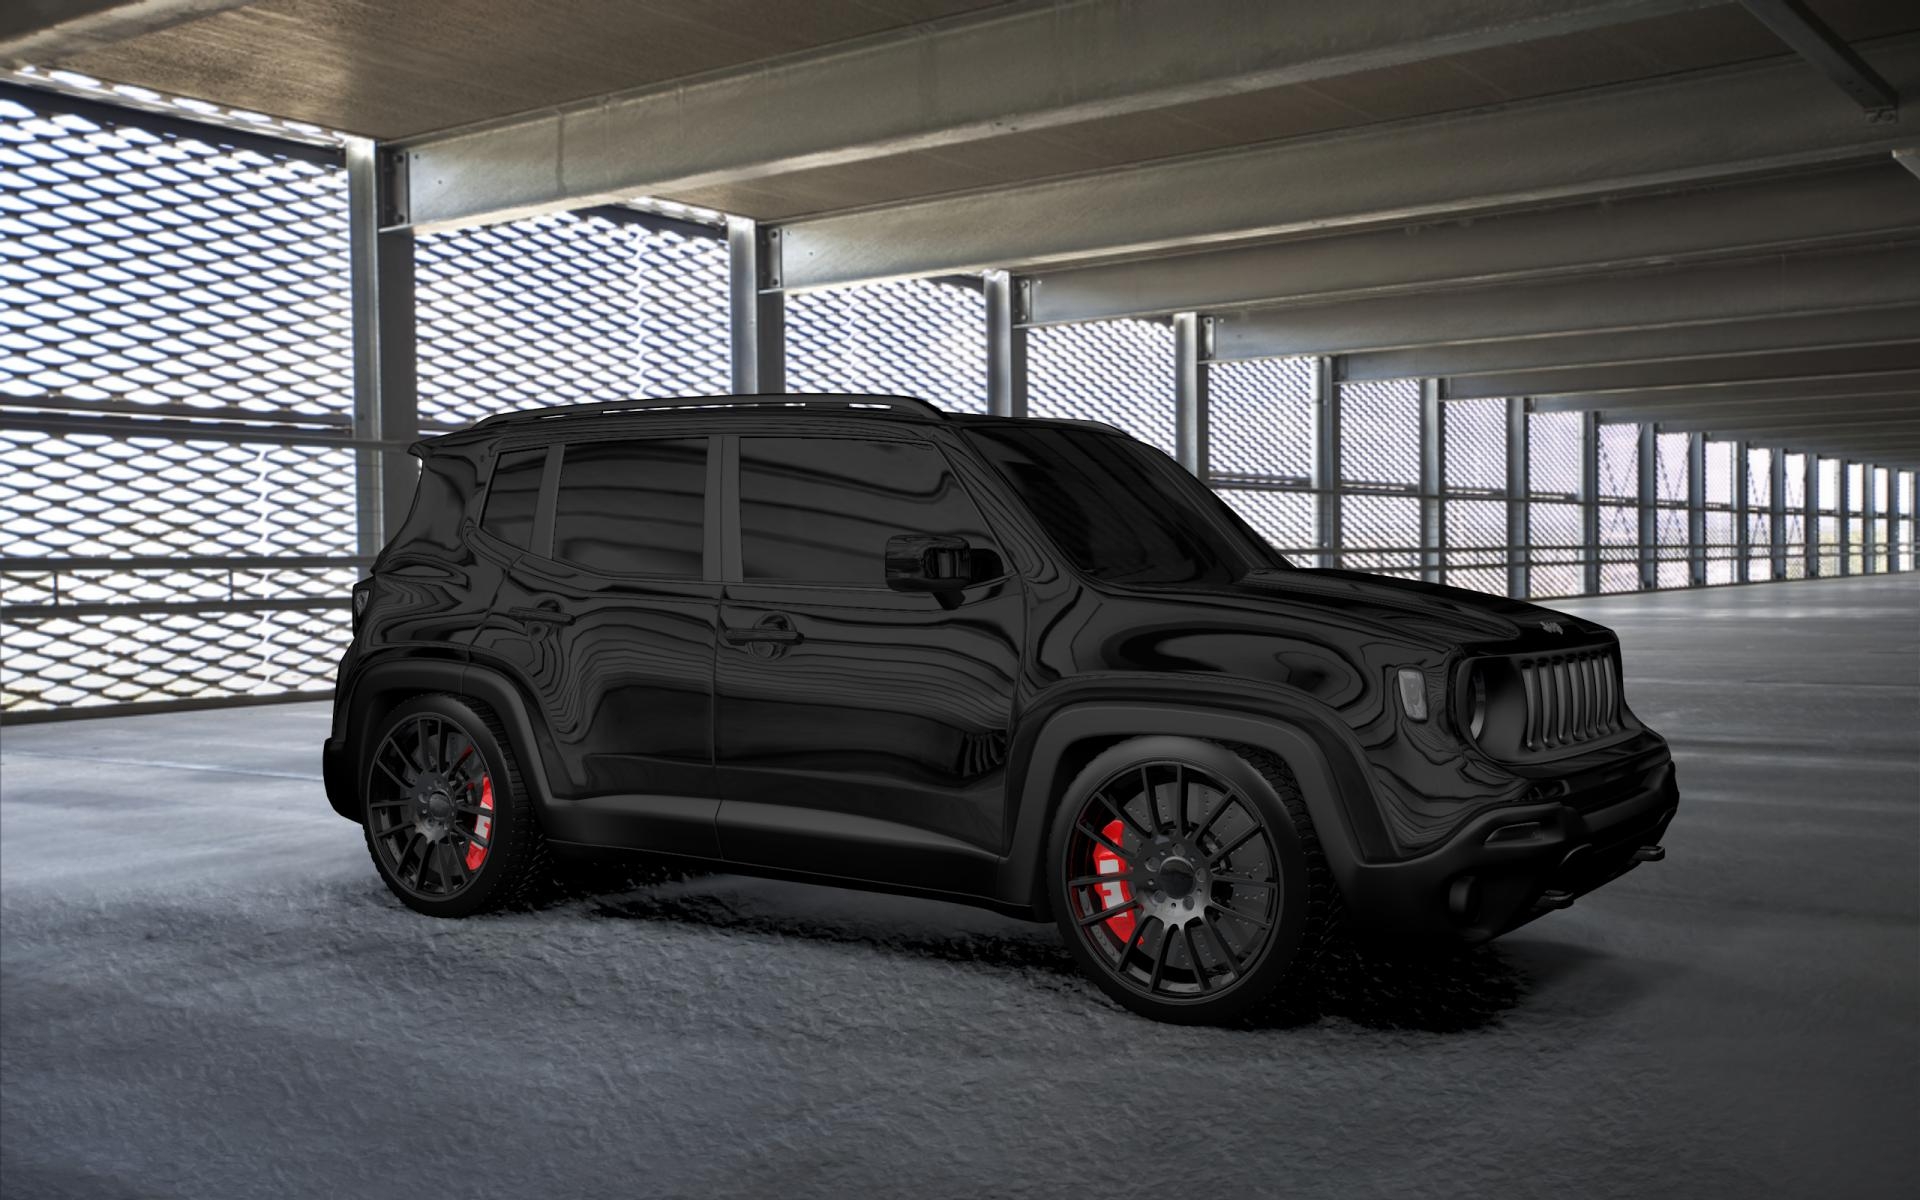 Blacked Out Renegade Jeep Renegade Forum